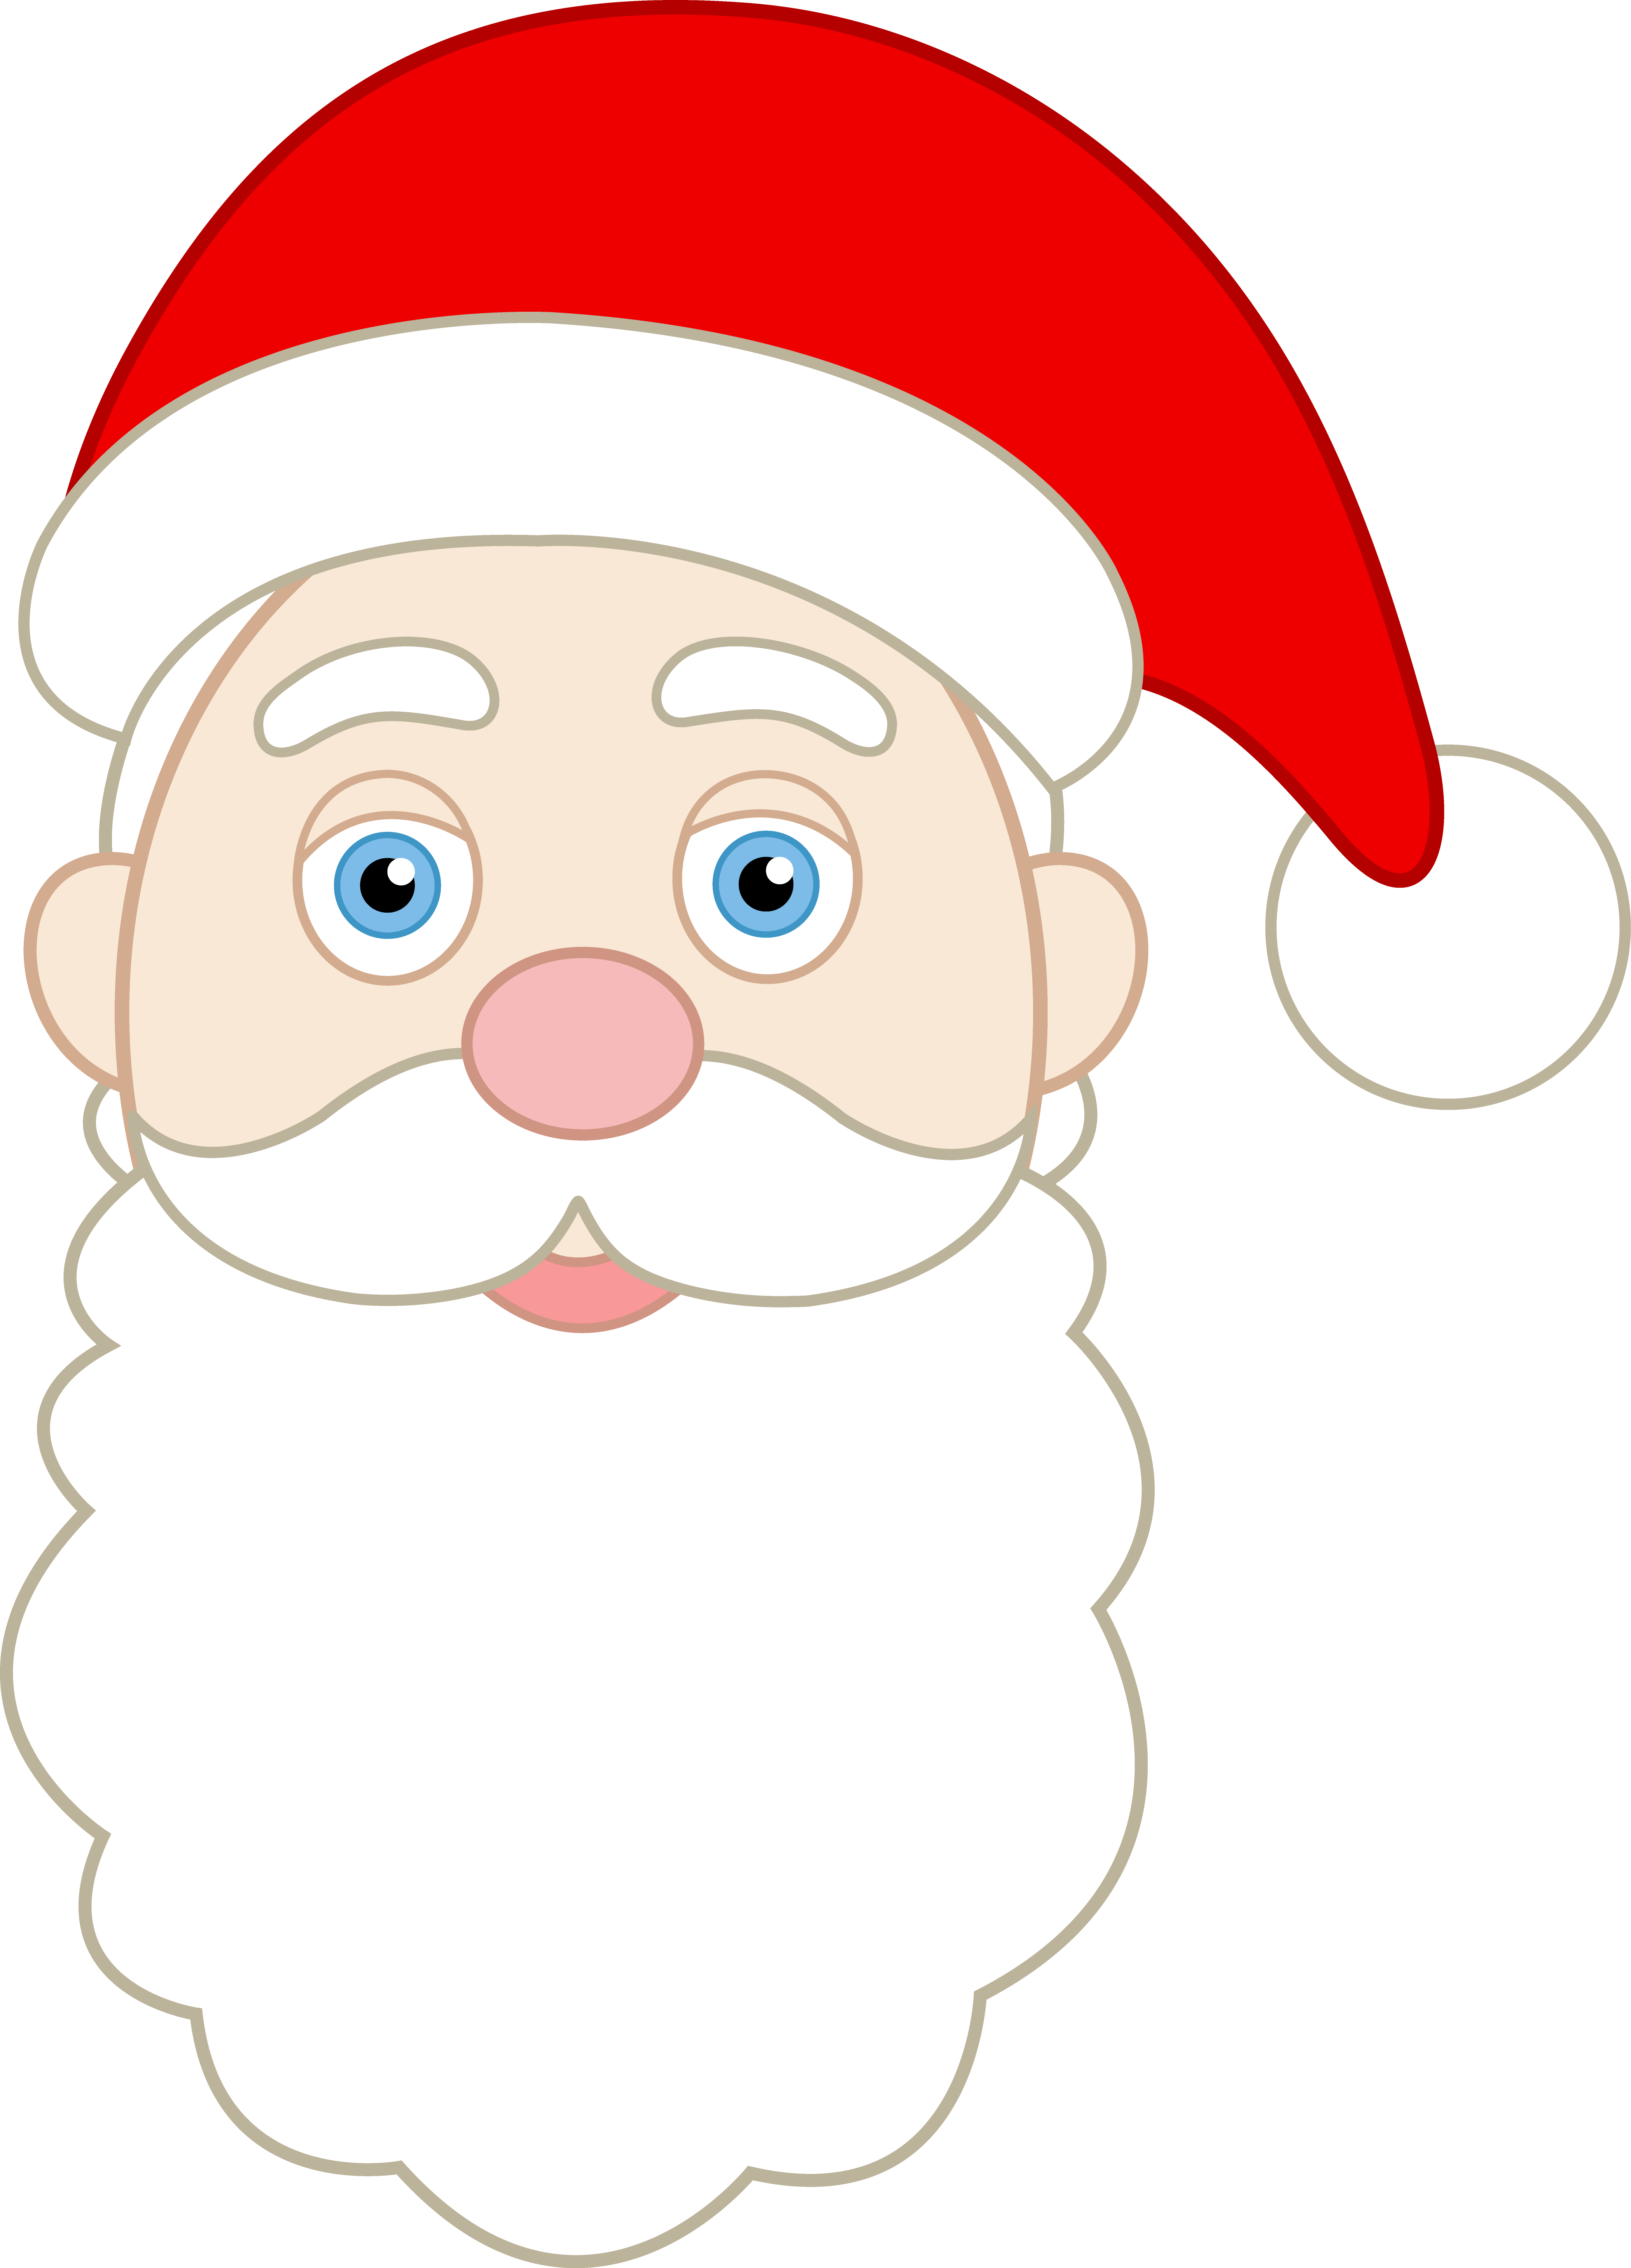 Face of Santa Claus - Free Clip Art-Face of Santa Claus - Free Clip Art-14